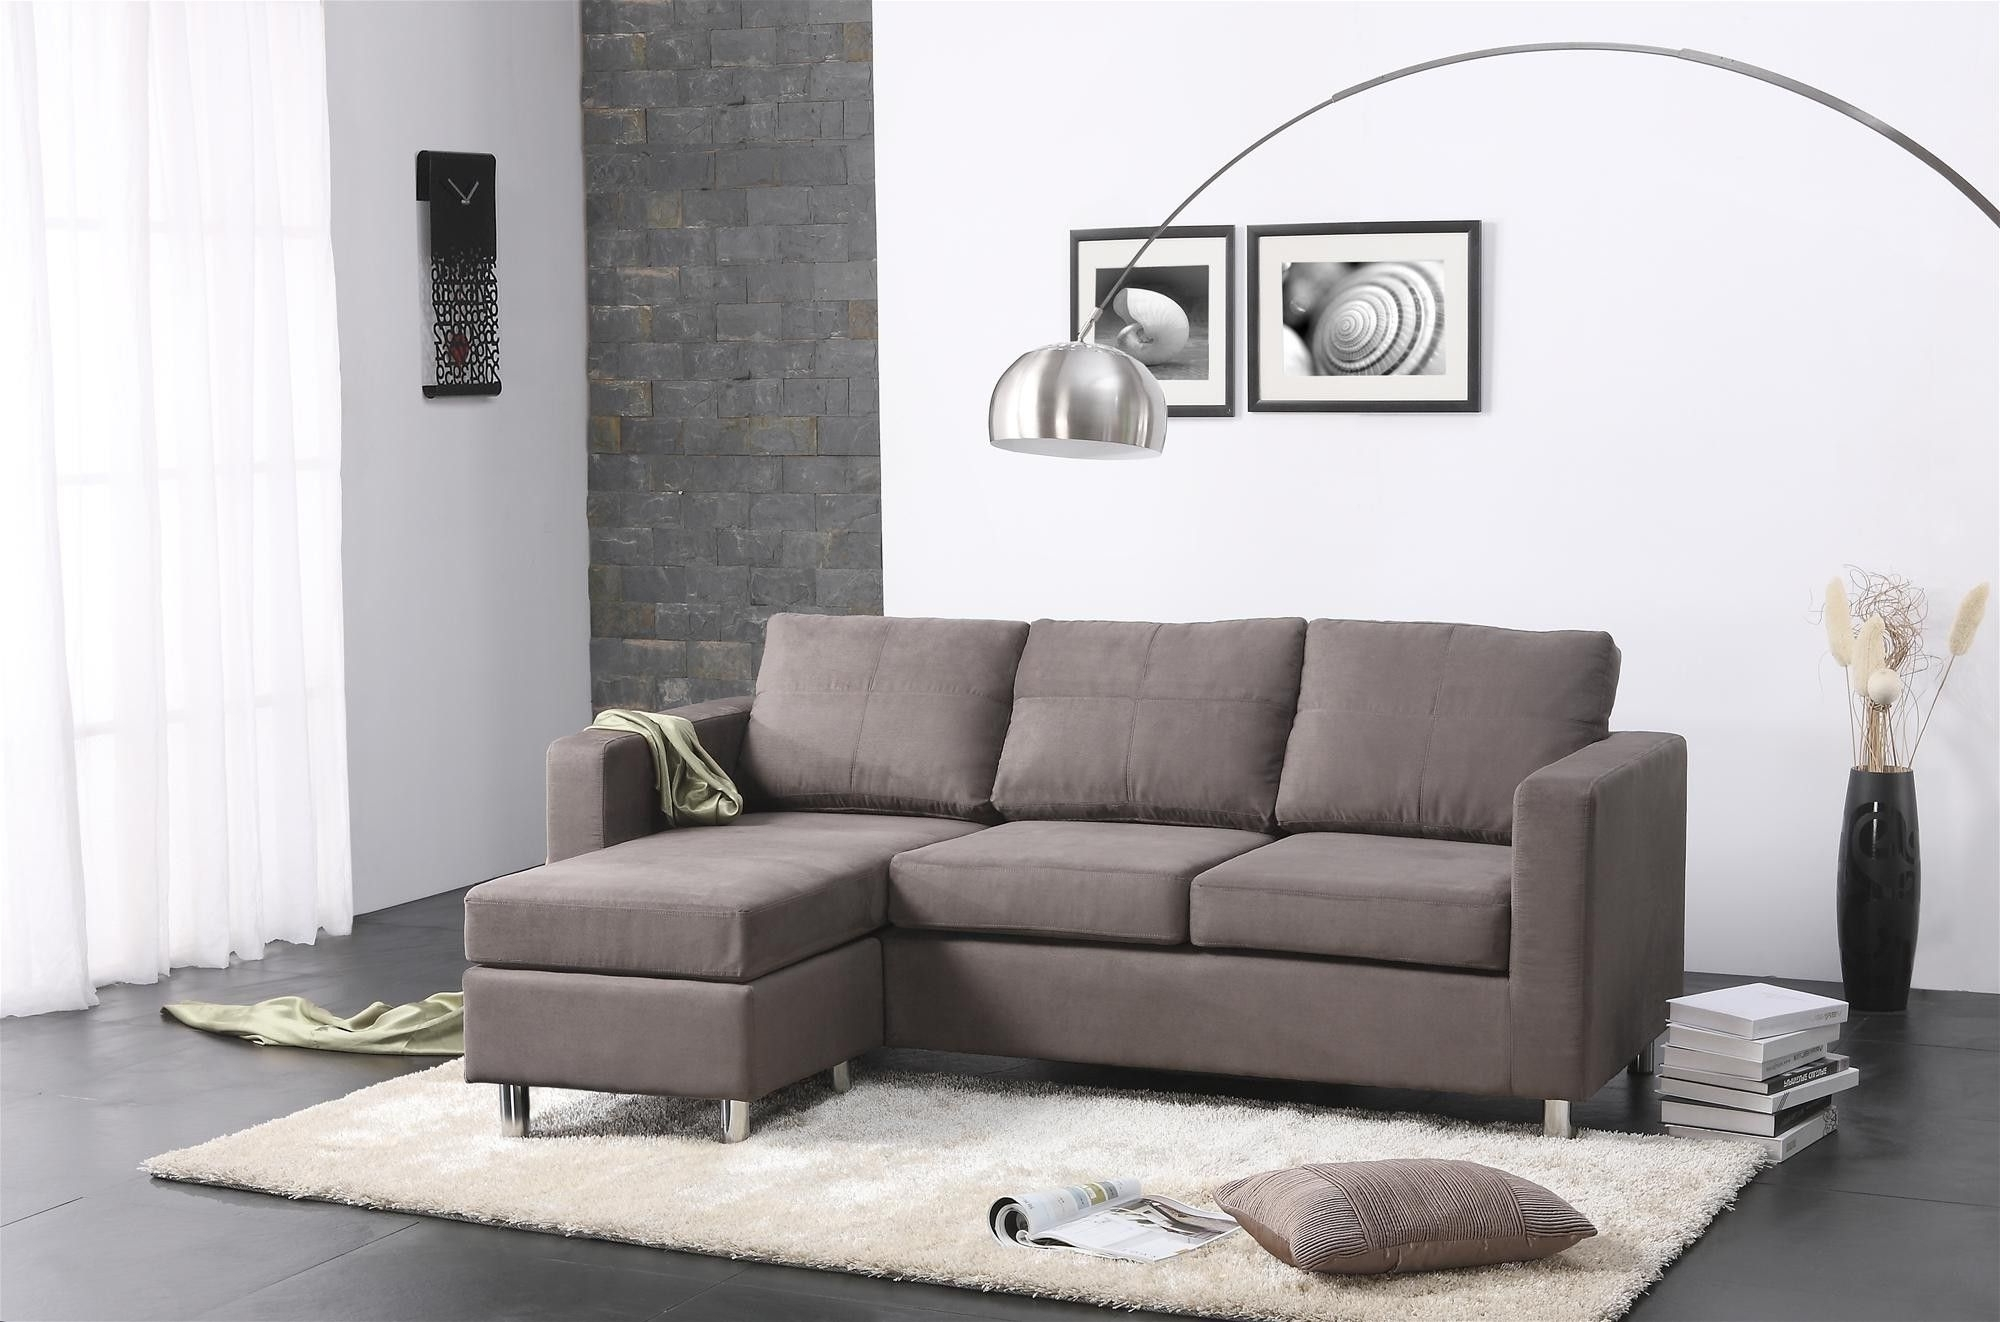 Current Chaise Lounge Chairs For Small Spaces Intended For Amazing Modern Small Spaces Living Room Decors With Grey Sectional (View 6 of 15)